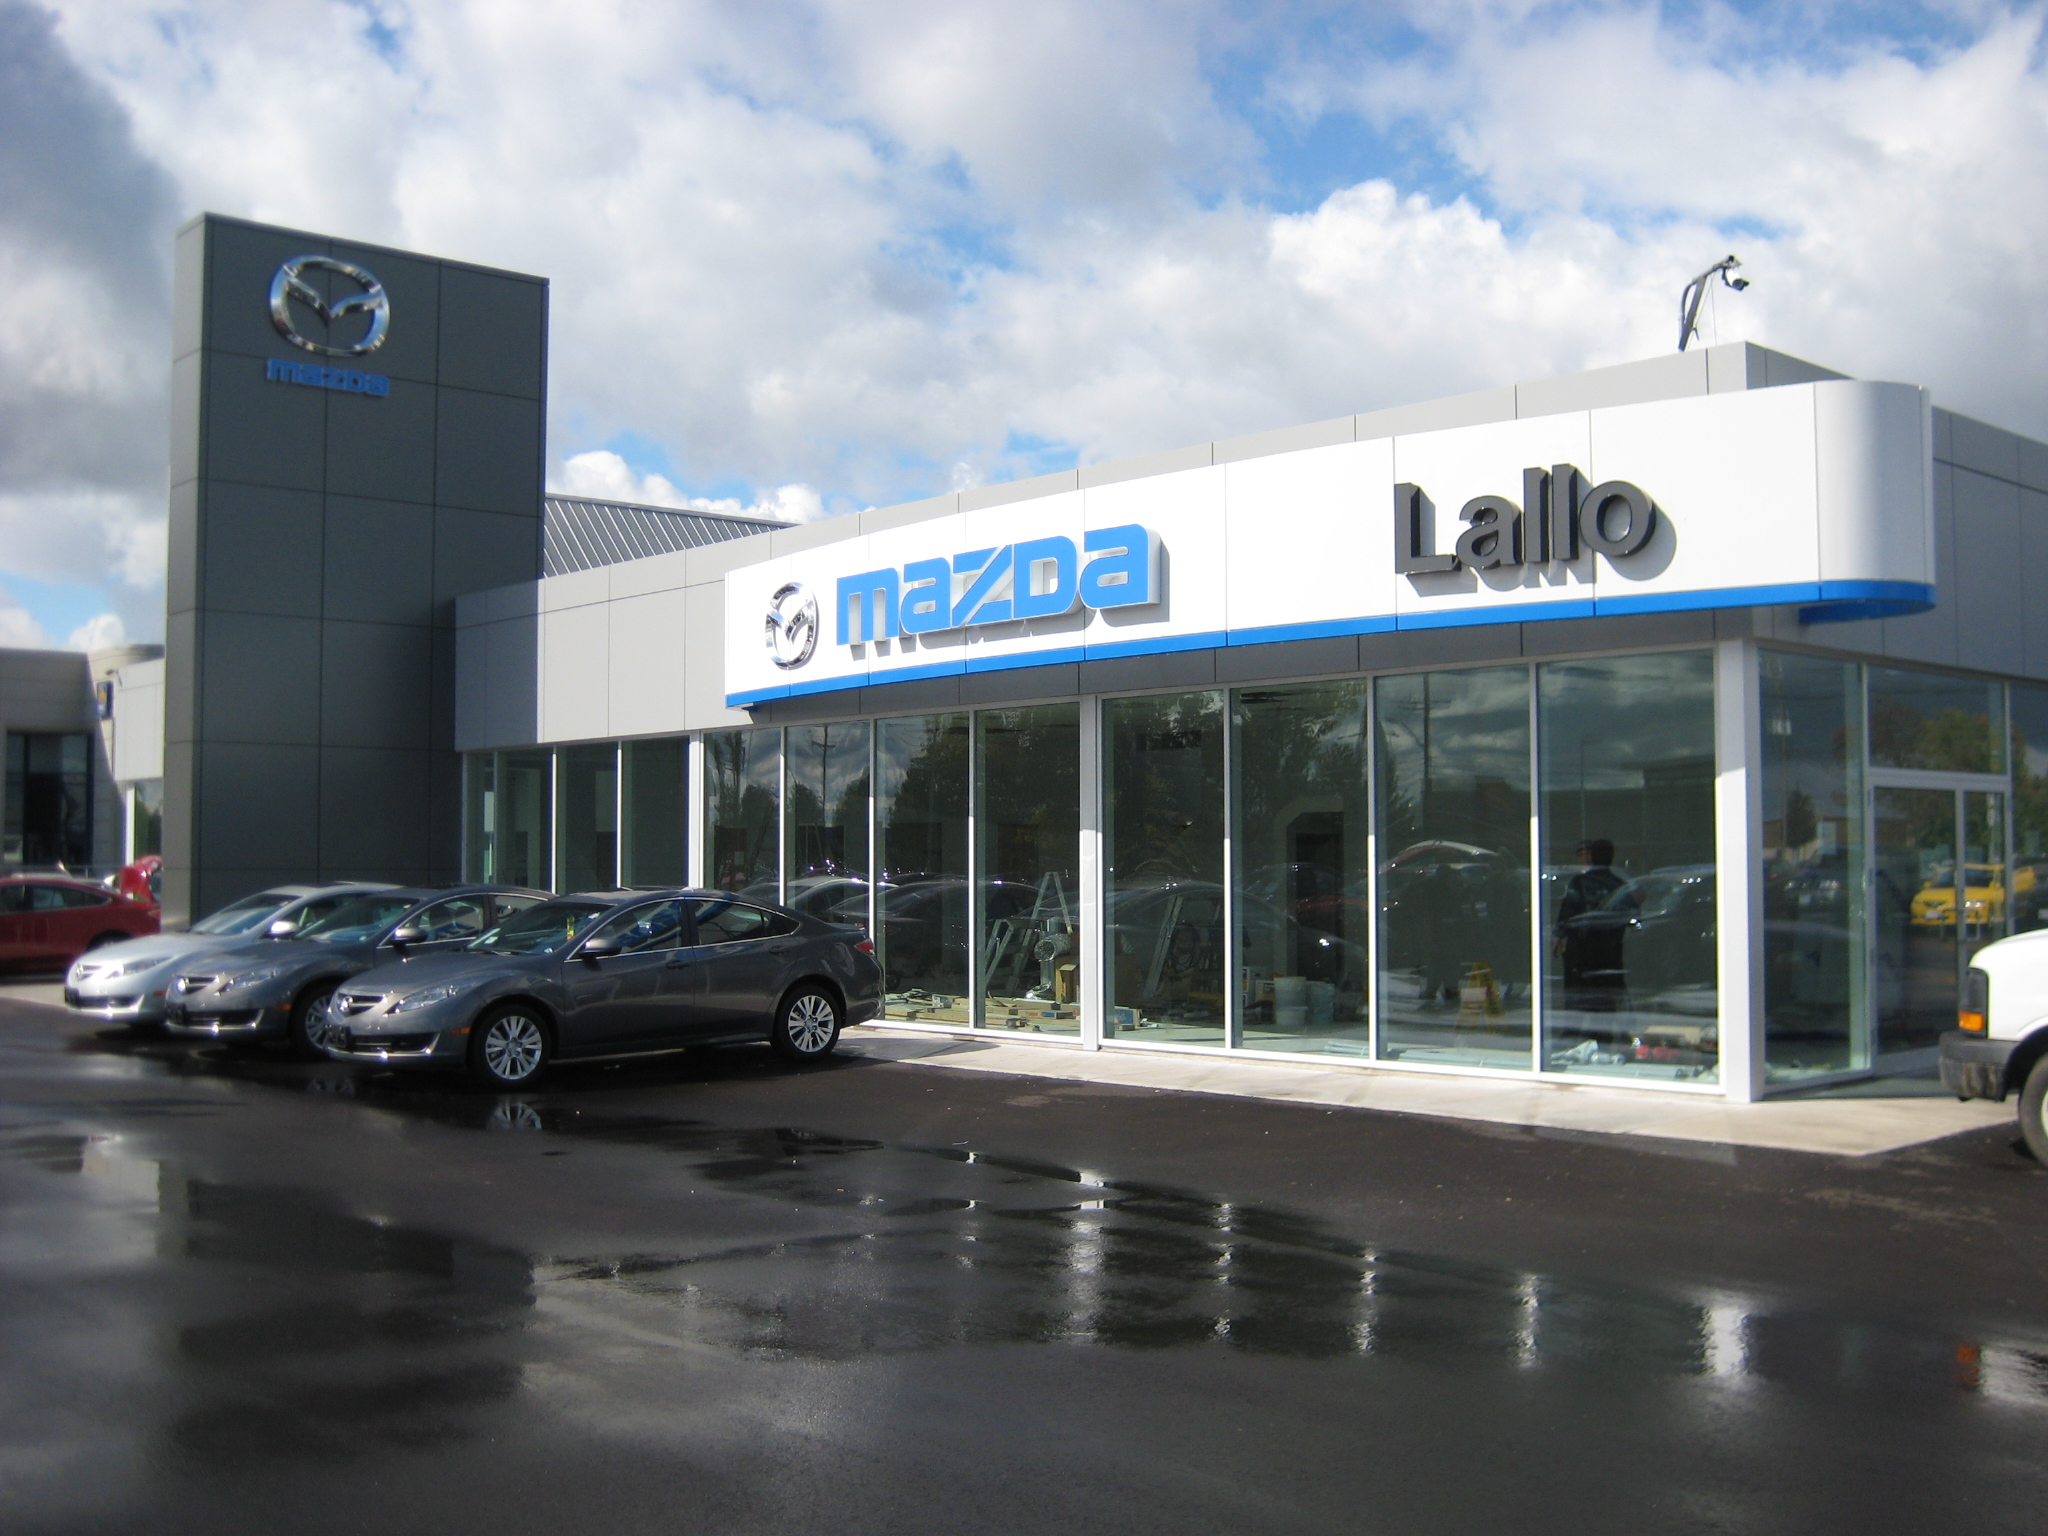 Lallo Mazda -Brantford, ON